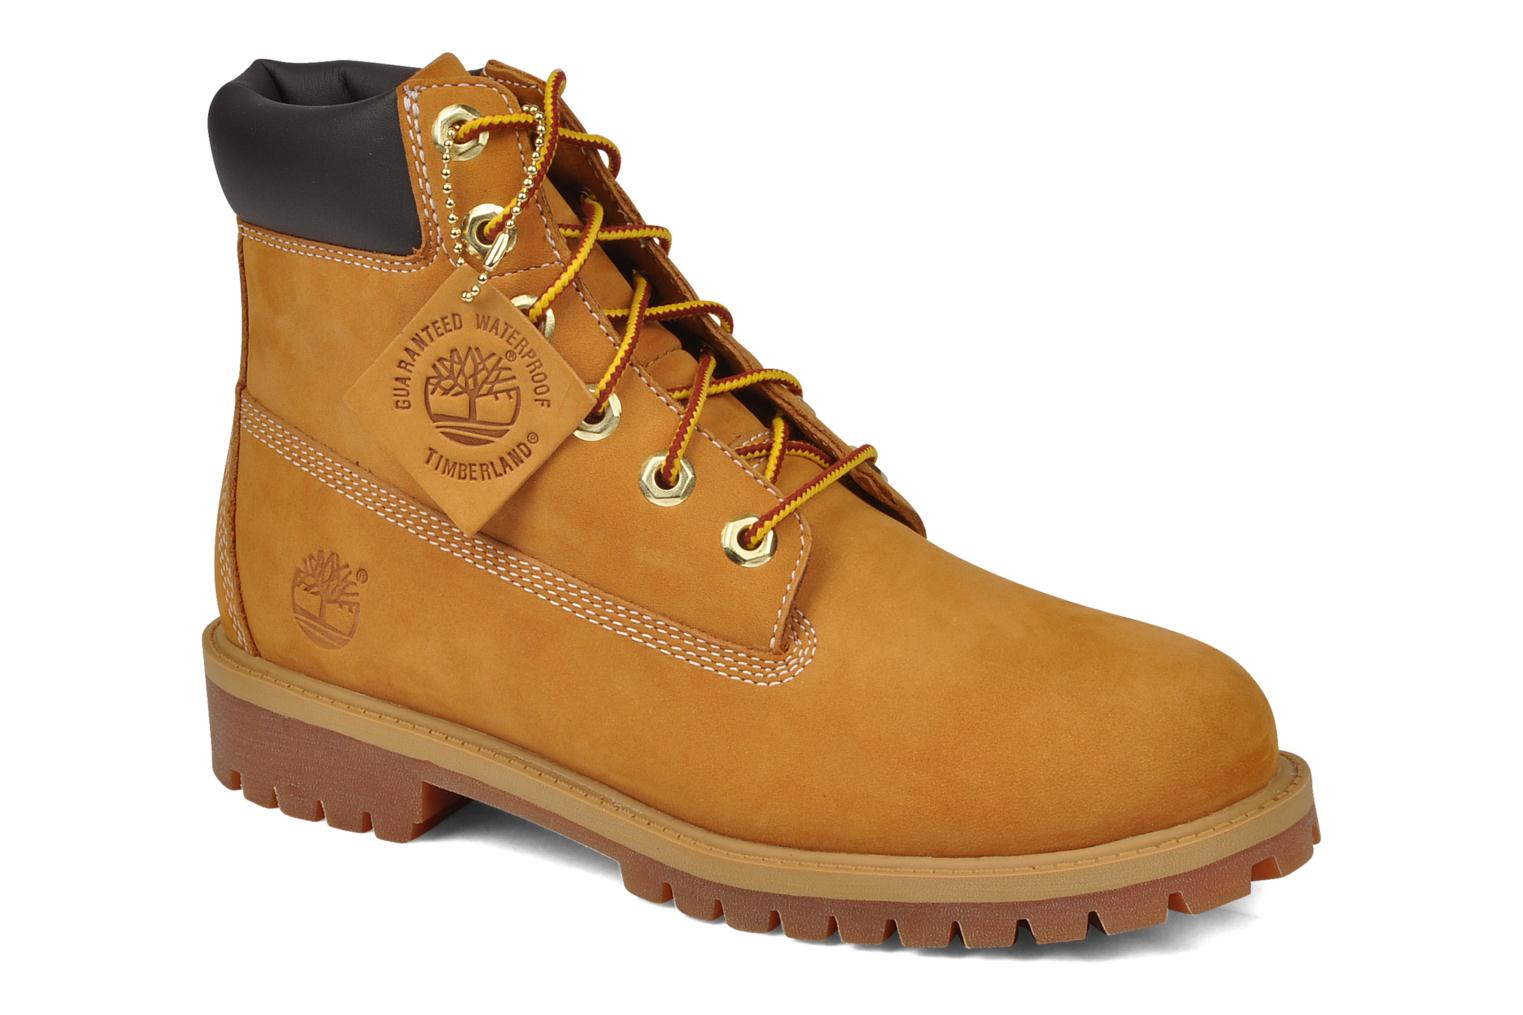 6in premium boot by TimberlandRebajas - 10%